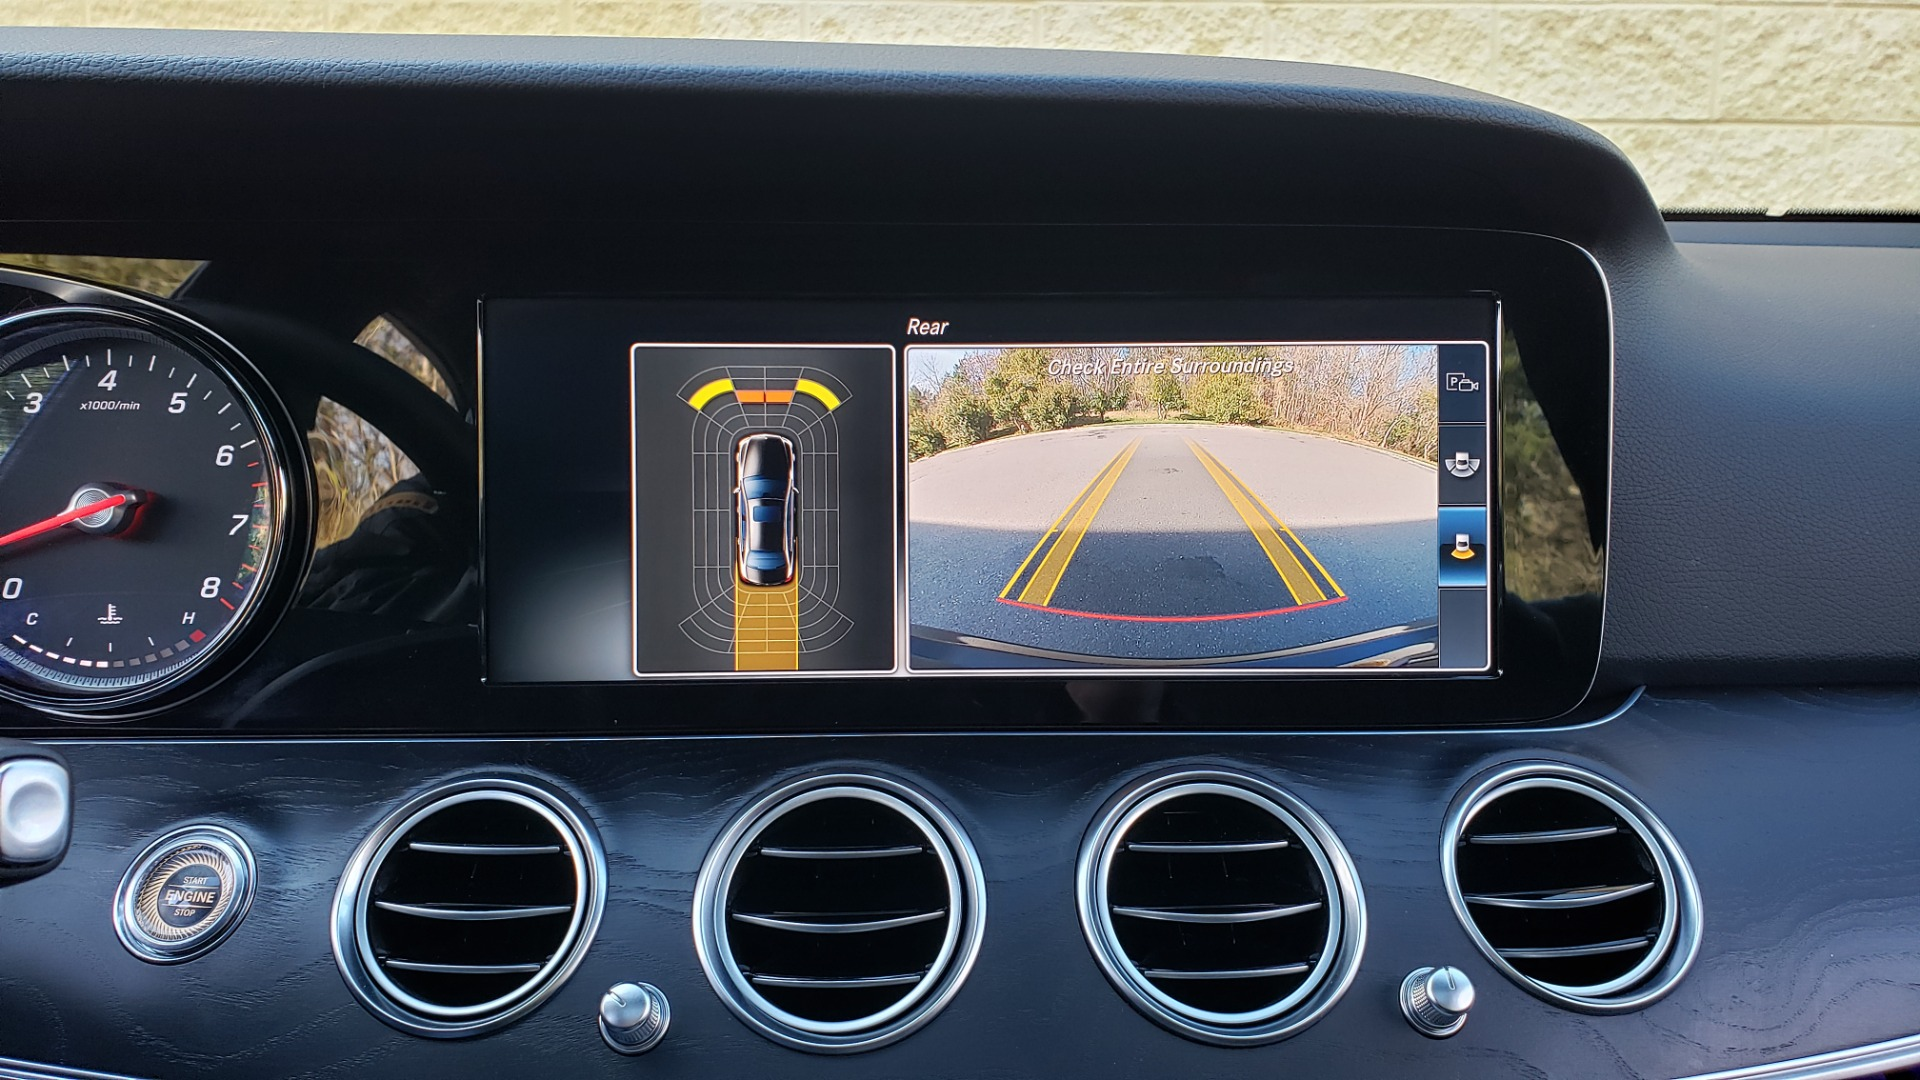 Used 2017 Mercedes-Benz E-CLASS E 300 PREMIUM / NAV / SUNROOF / BURMESTER / HTD STS / REARVIEW for sale $29,995 at Formula Imports in Charlotte NC 28227 49